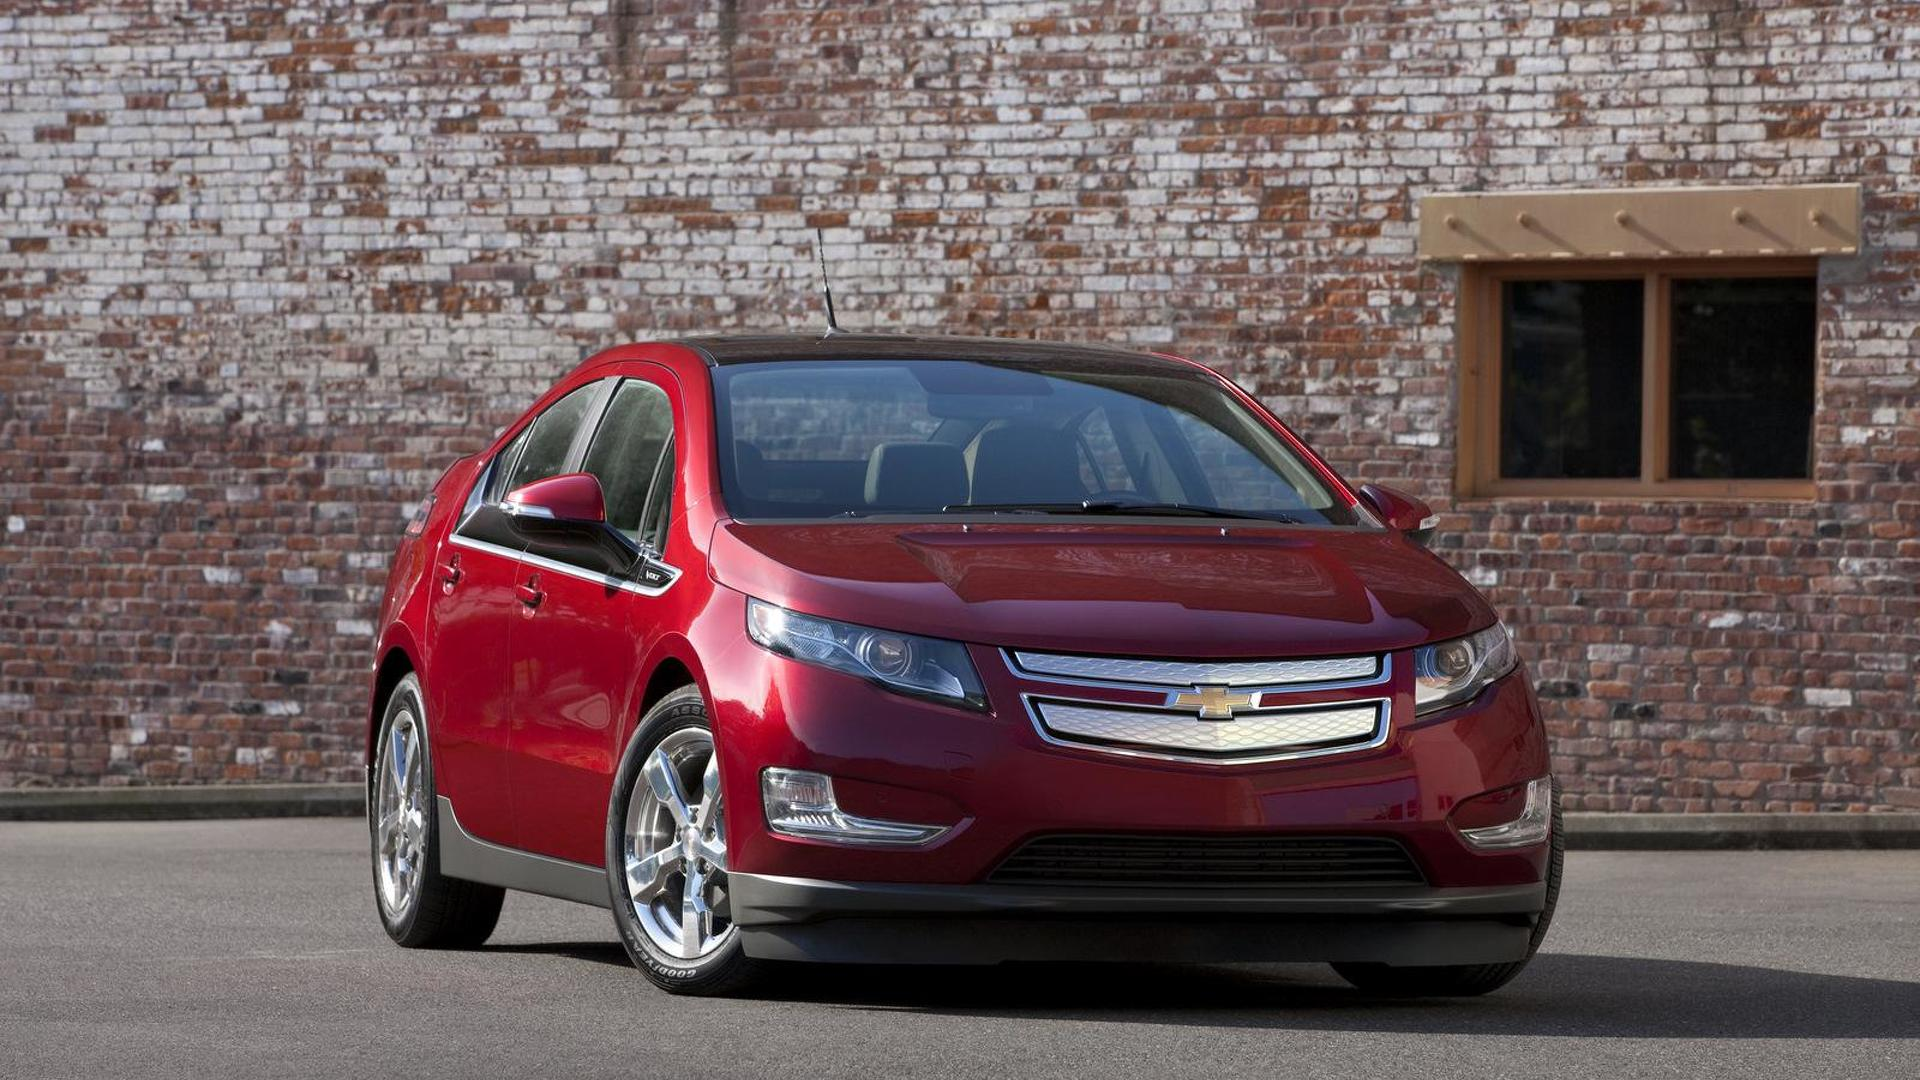 Chevy volt gets 127 mpg in independent test product 2010 10 15 14 26 19